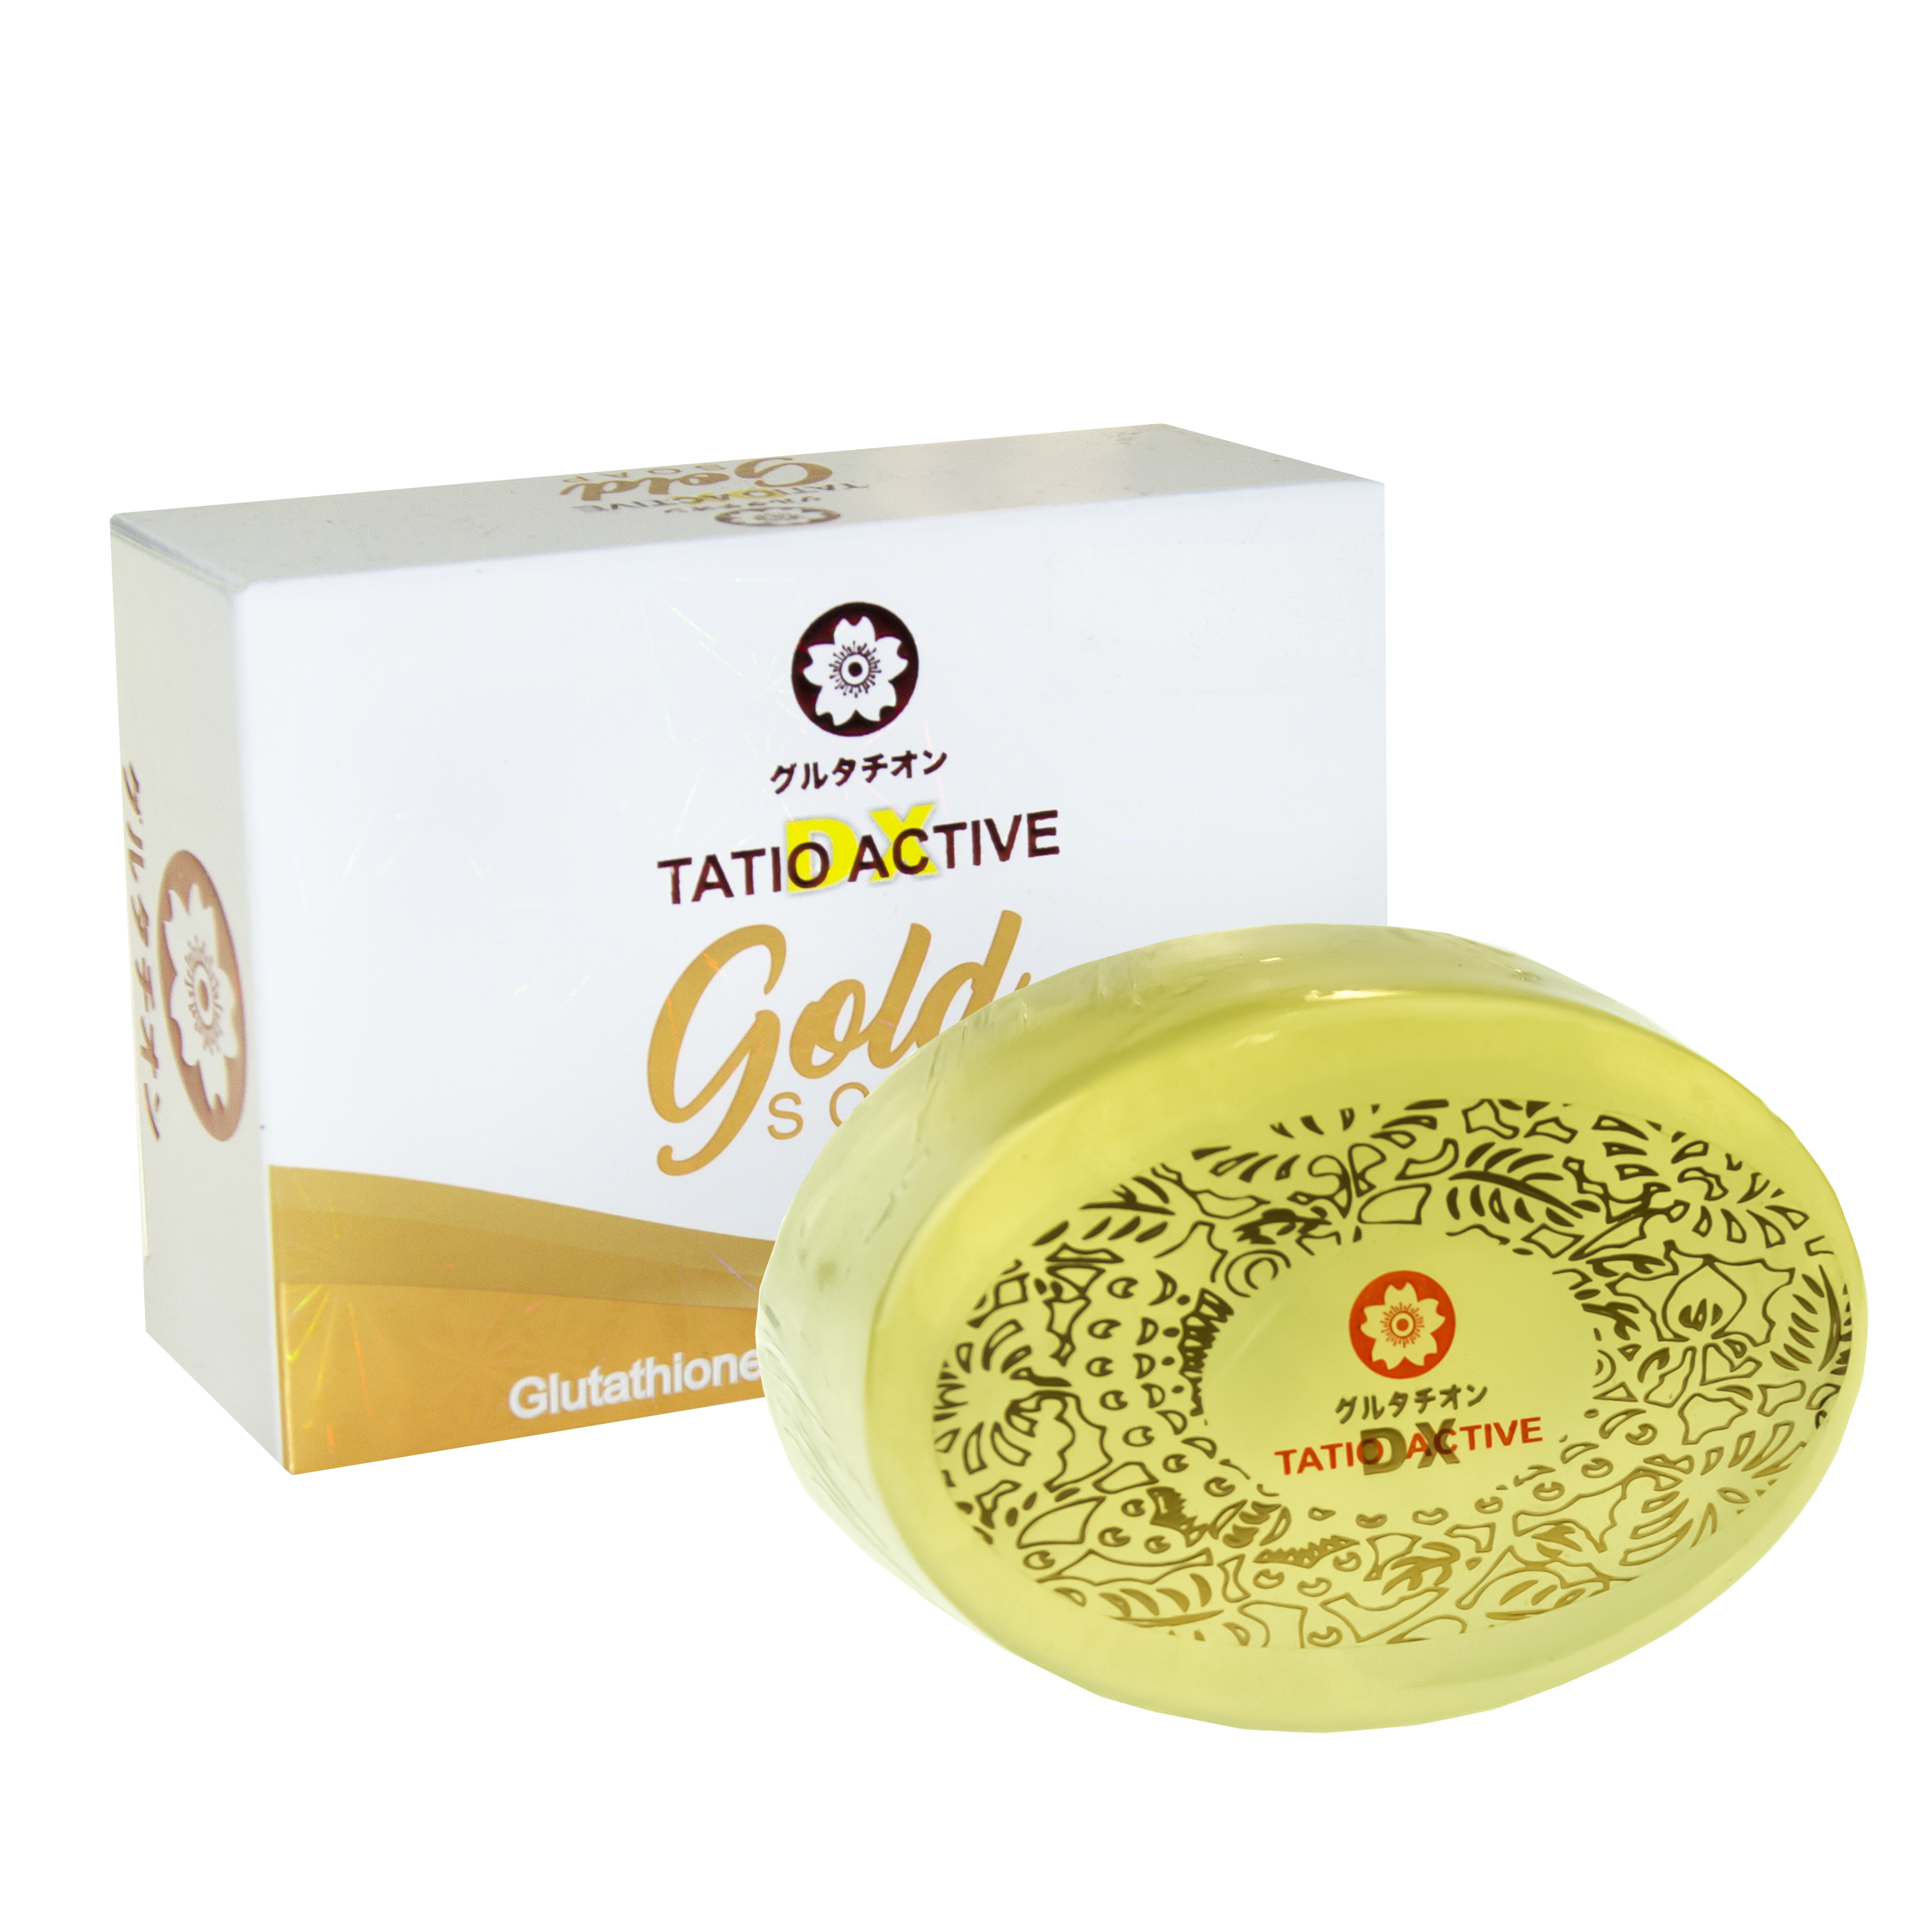 NEW! Tatio Active Gold Glutathione Whitening Soap 150g - Great for all skin types!